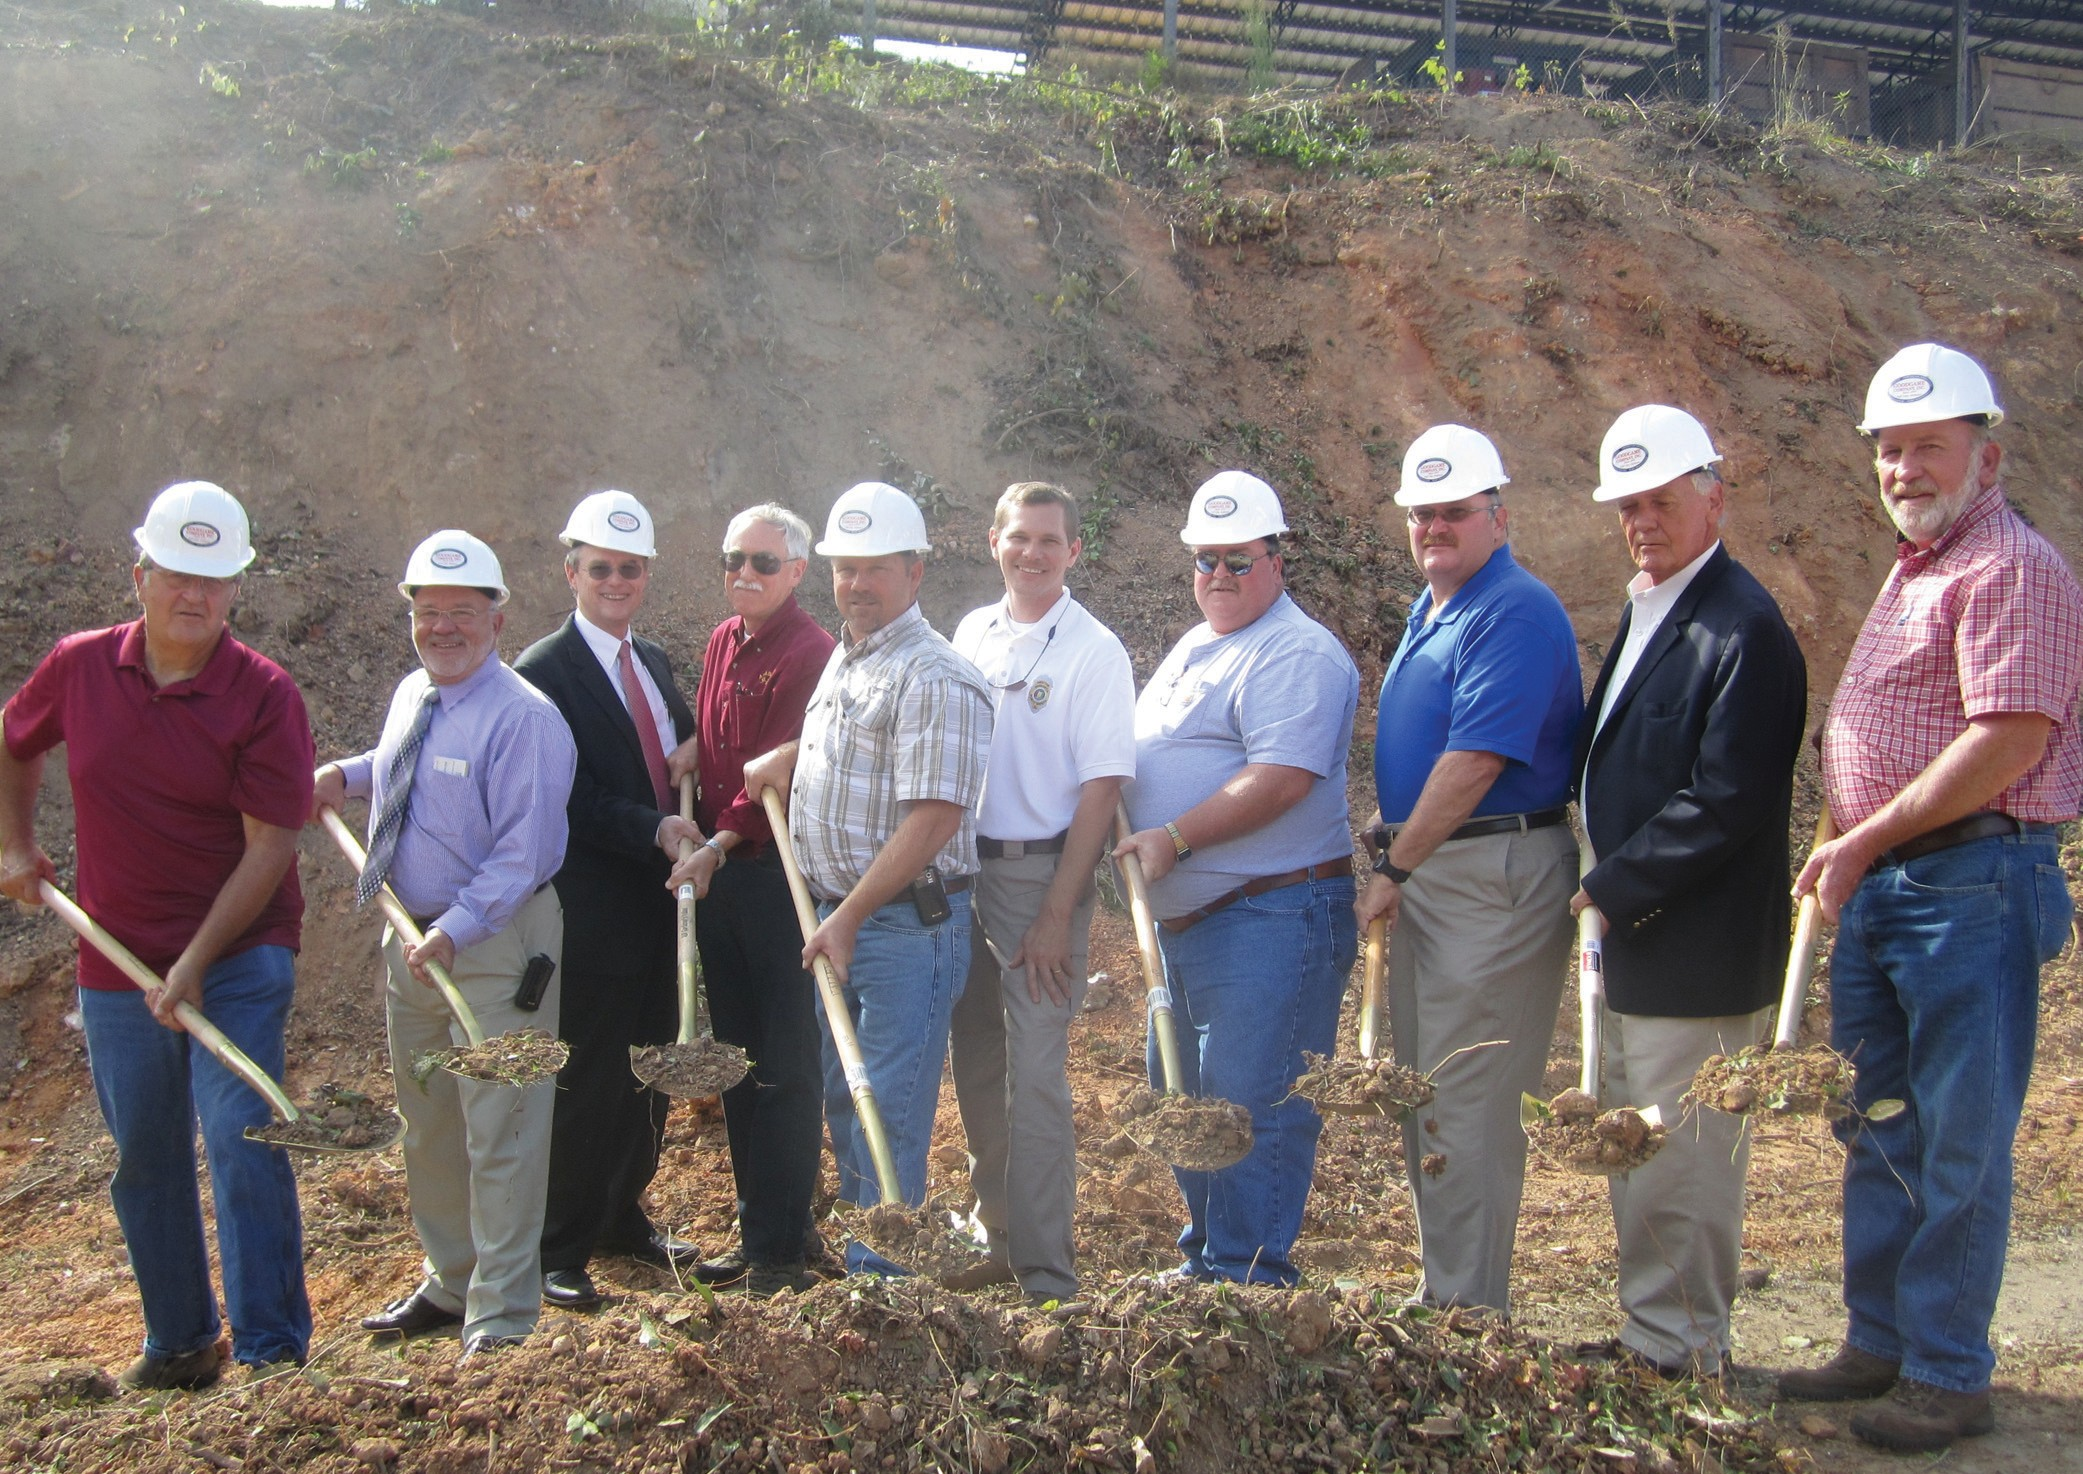 Shown from the left are 911 board member Bob Sanford, District 4 Commissioner Gary Stricklin, Commission Chairman Chris Green, 911 director and board member Max Armstrong, District 3 Commissioner Dean Calvert, board members Brandon Horton, Steve Pass, Tim Kent, Arrington, and Dean Gilbert.